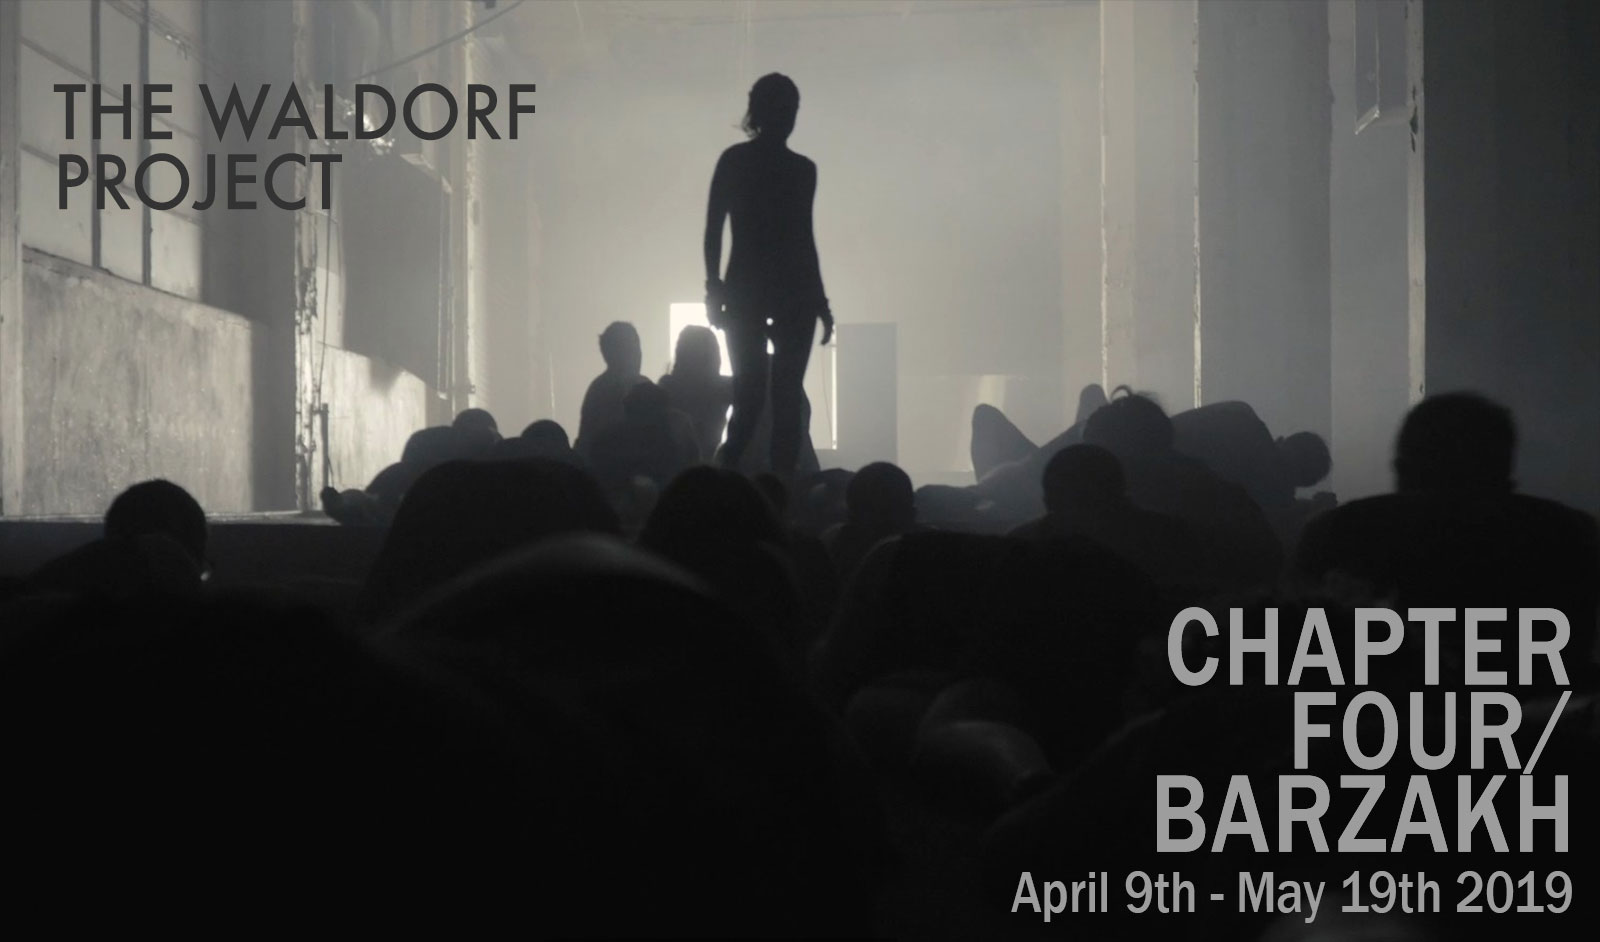 Waldorf Project | Chapter Four / Barzakh | April 9th - May 19th 2019